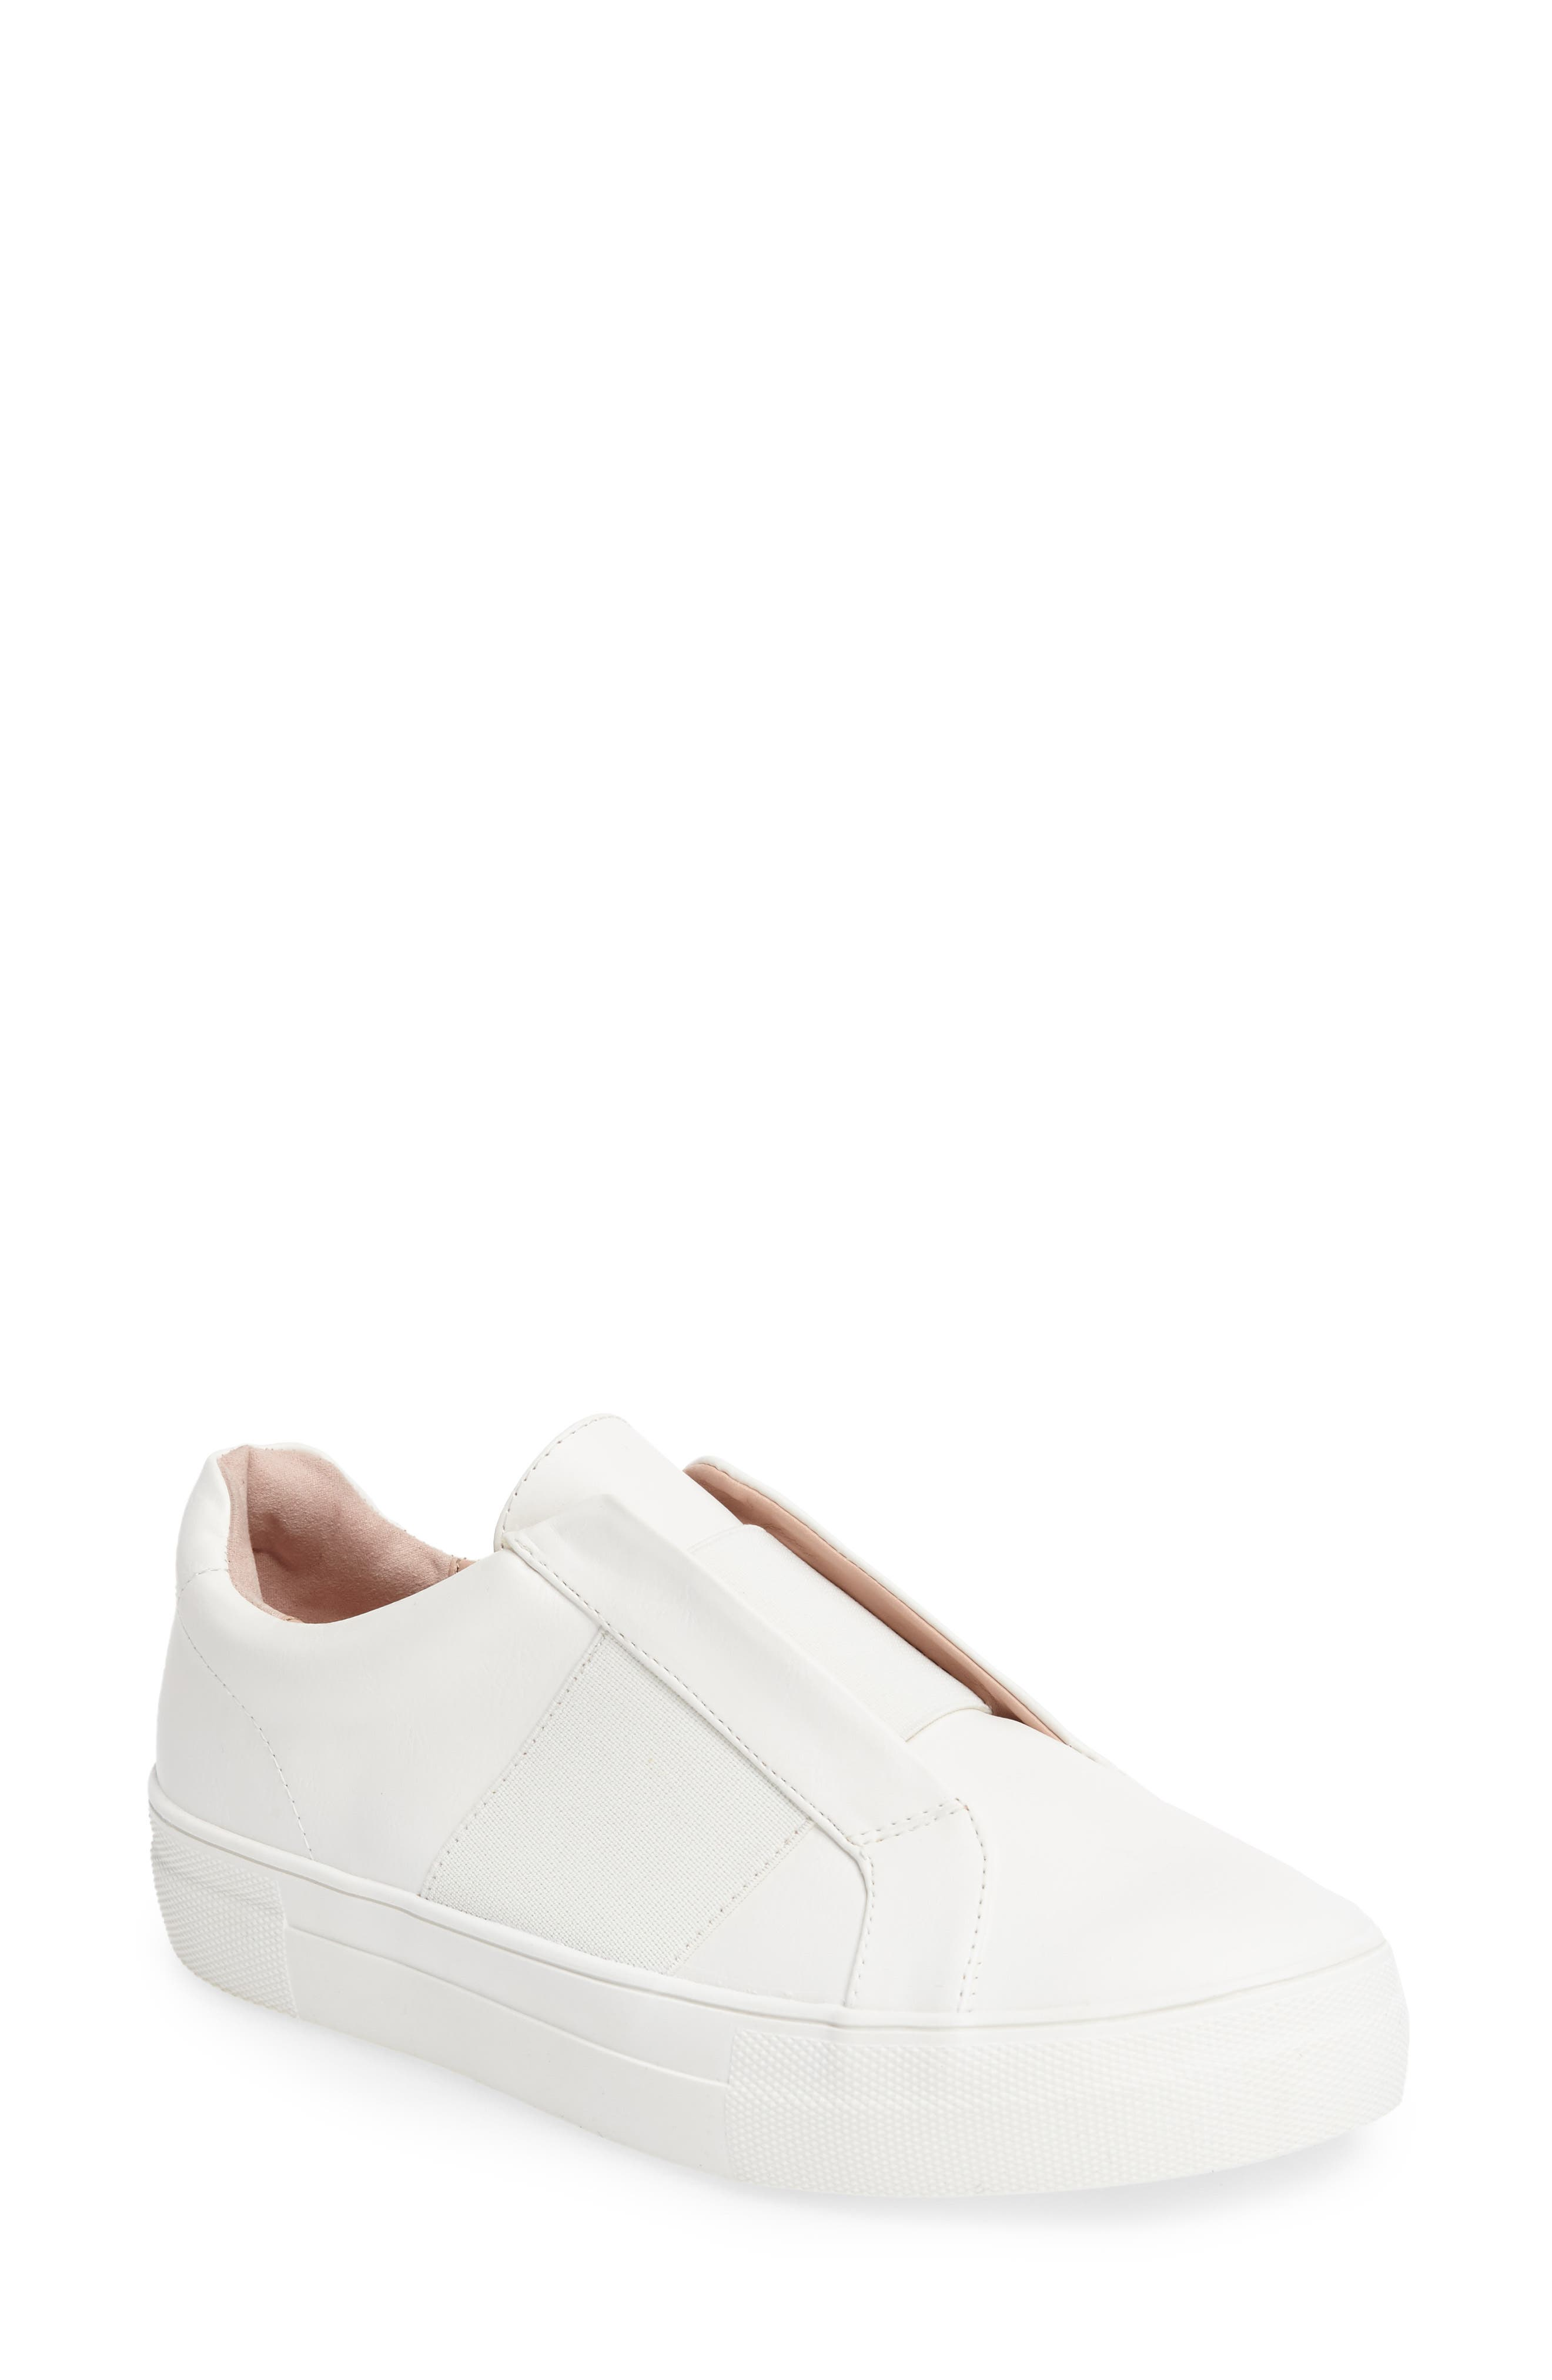 TOPSHOP Tangle Trainer Sneaker